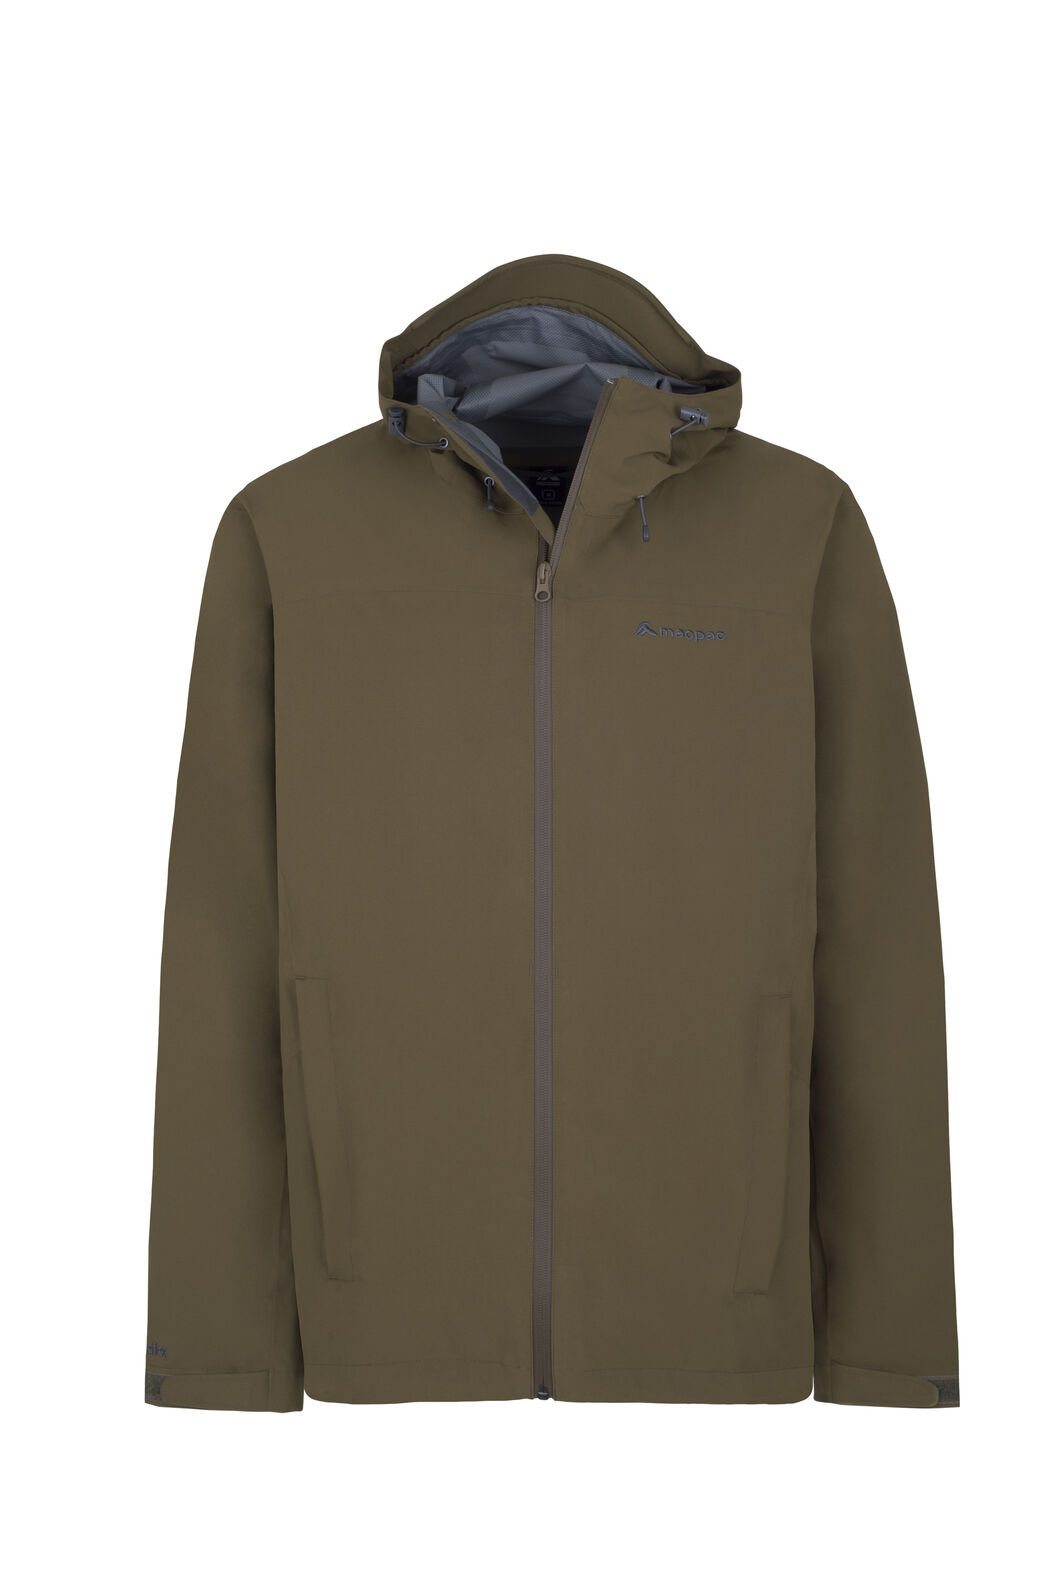 Macpac Dispatch Rain Jacket - Men's, Military Olive, hi-res